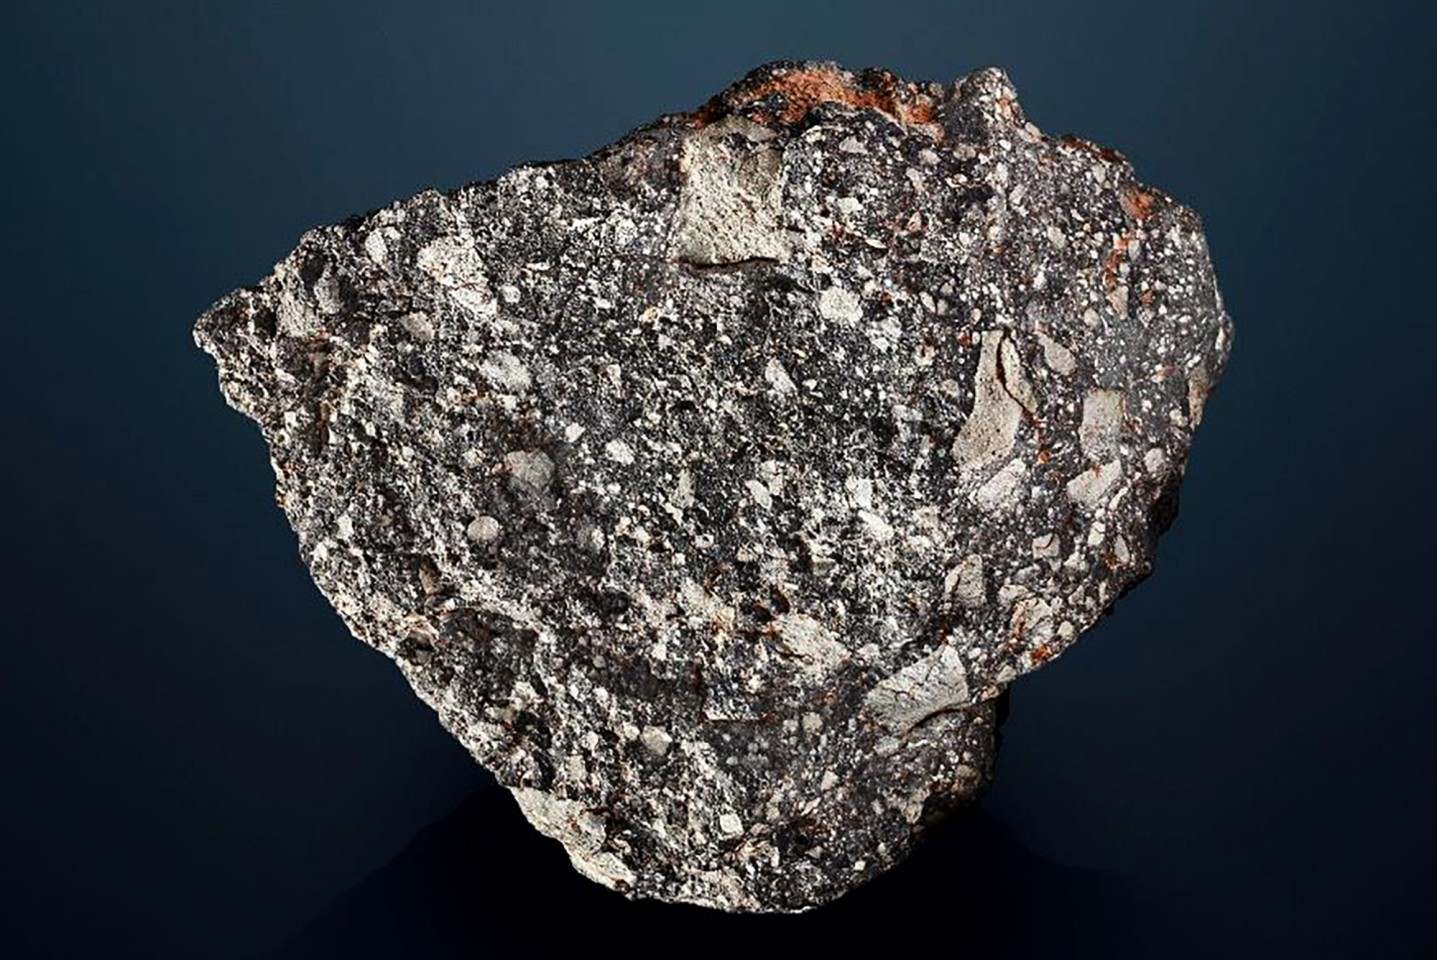 This 13.5 kg lunar meteorite came to rest in the Kalahari Desert around 4.5 billion years ago. It's available via Christie's Private Sales for around GBP£2 million (US$2.5 million).